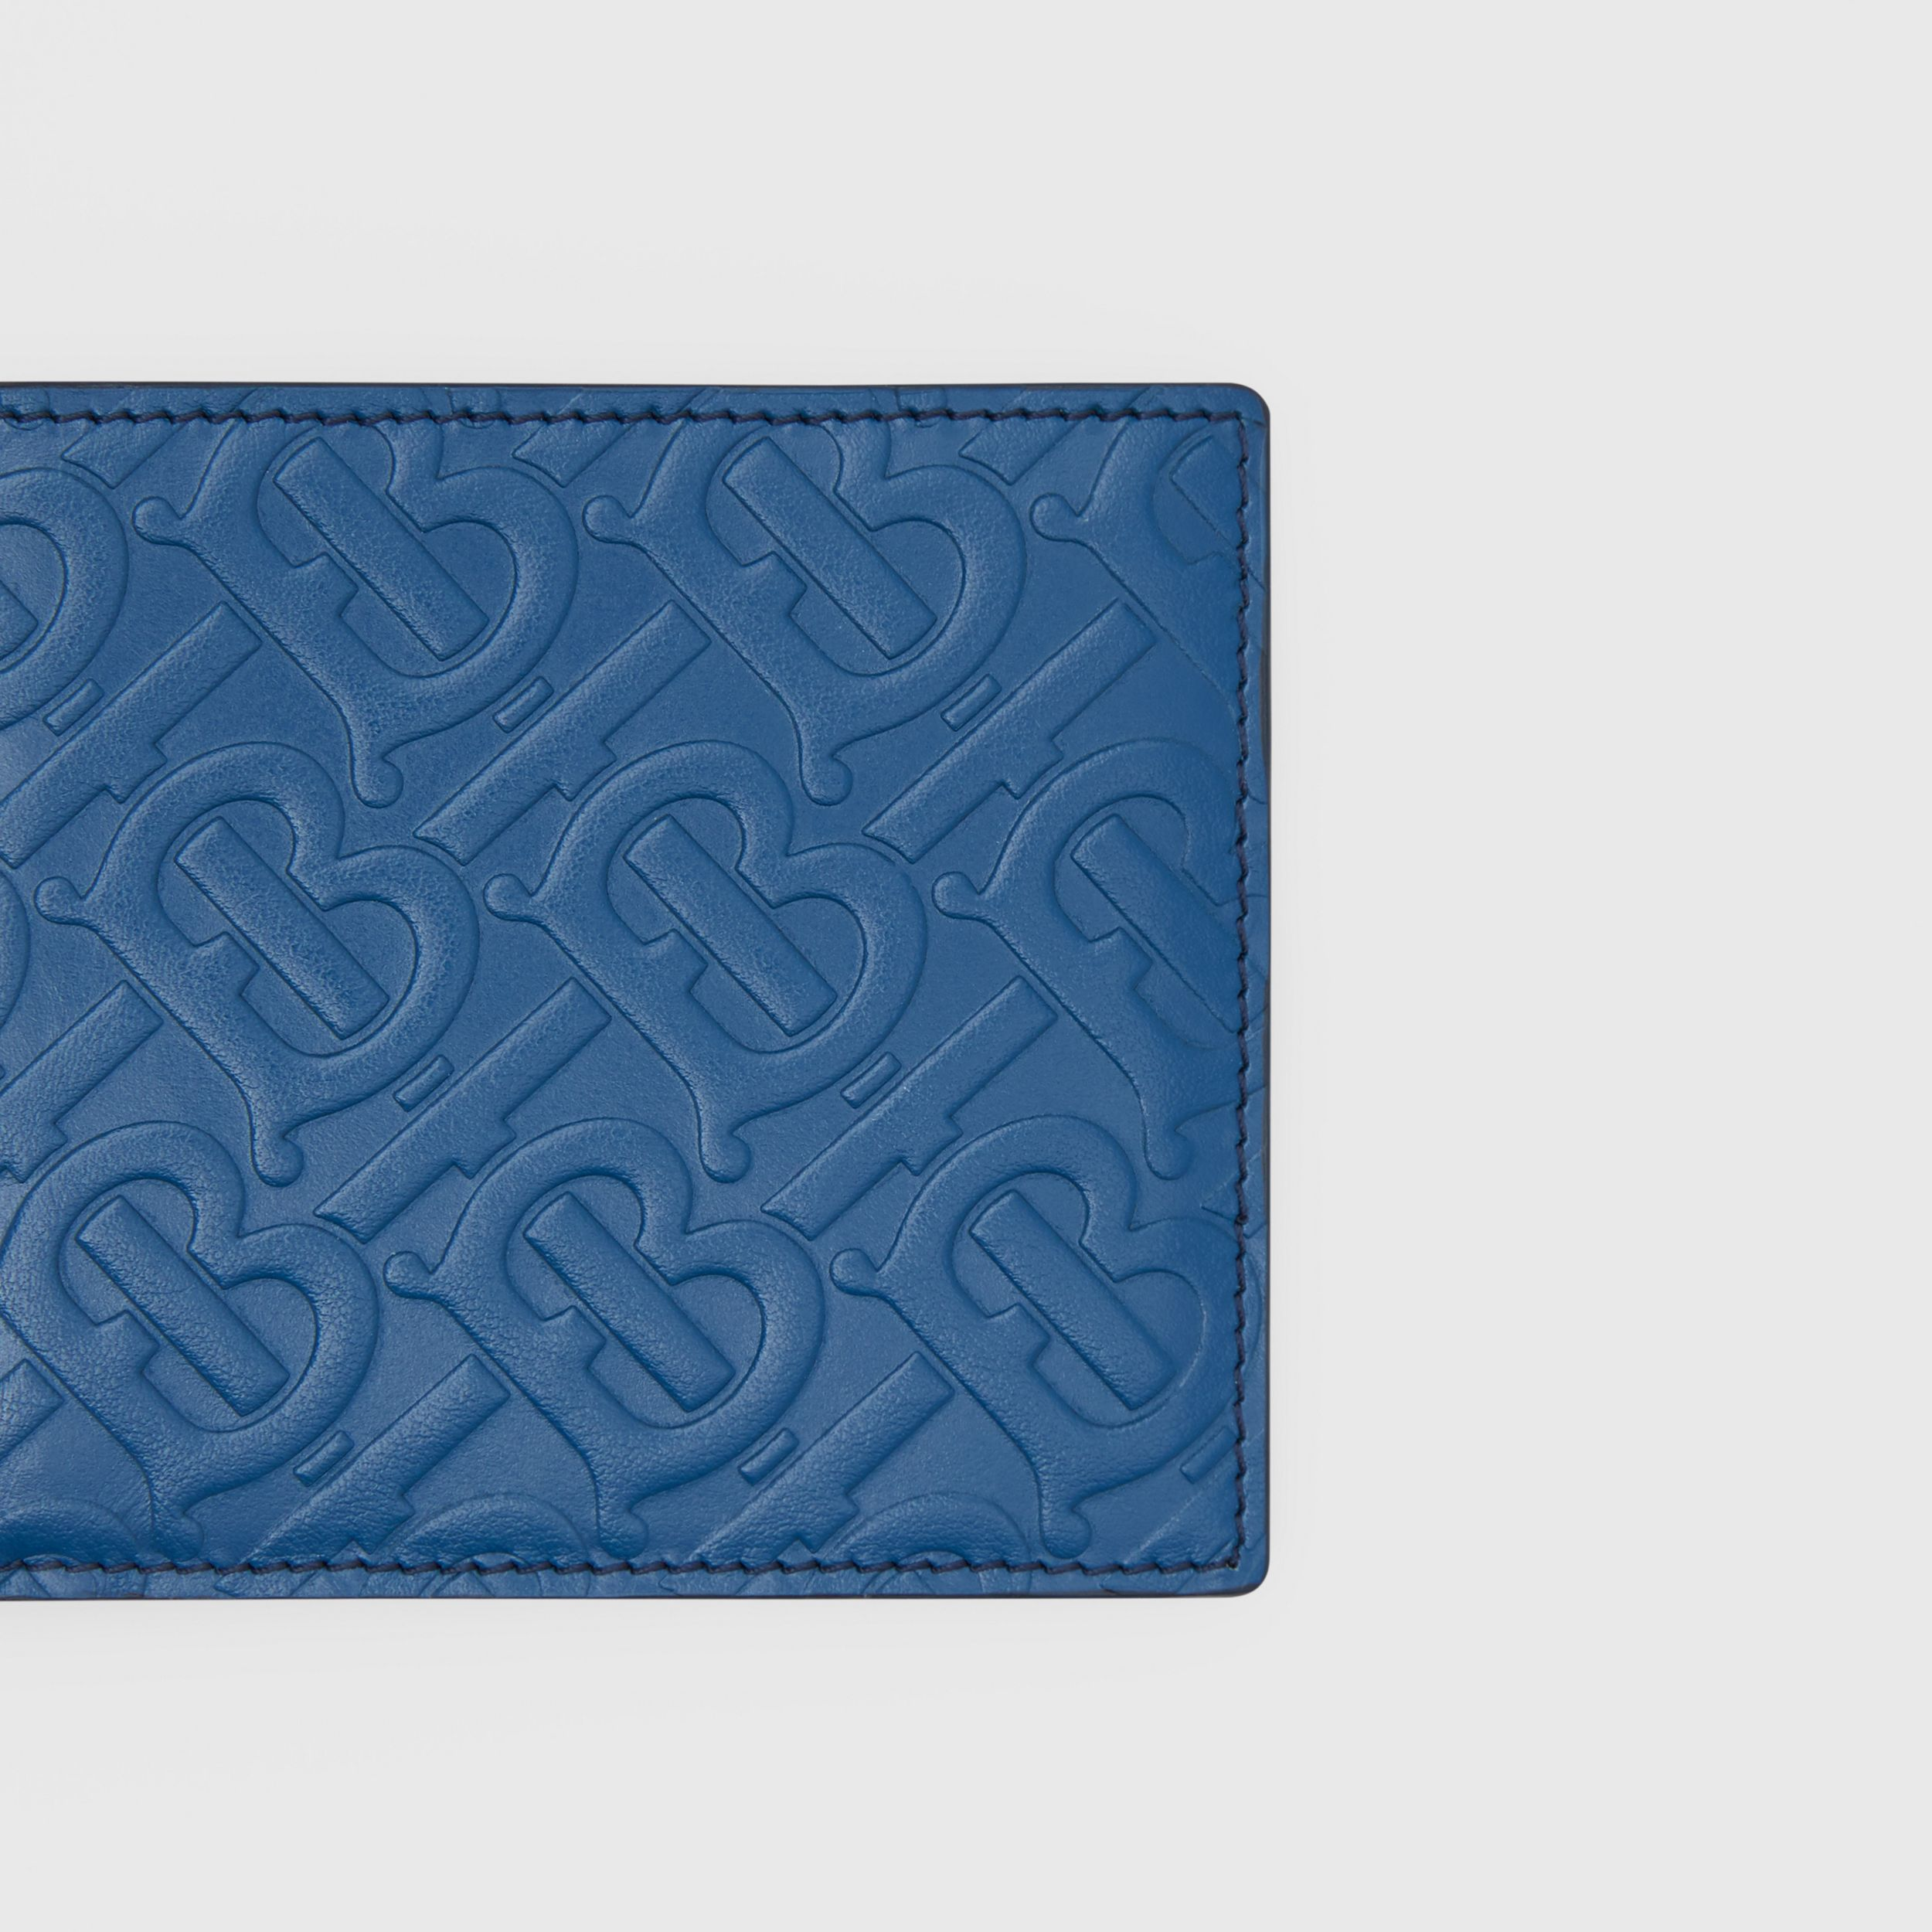 Monogram Leather International Bifold Wallet in Pale Canvas Blue - Men | Burberry - 2